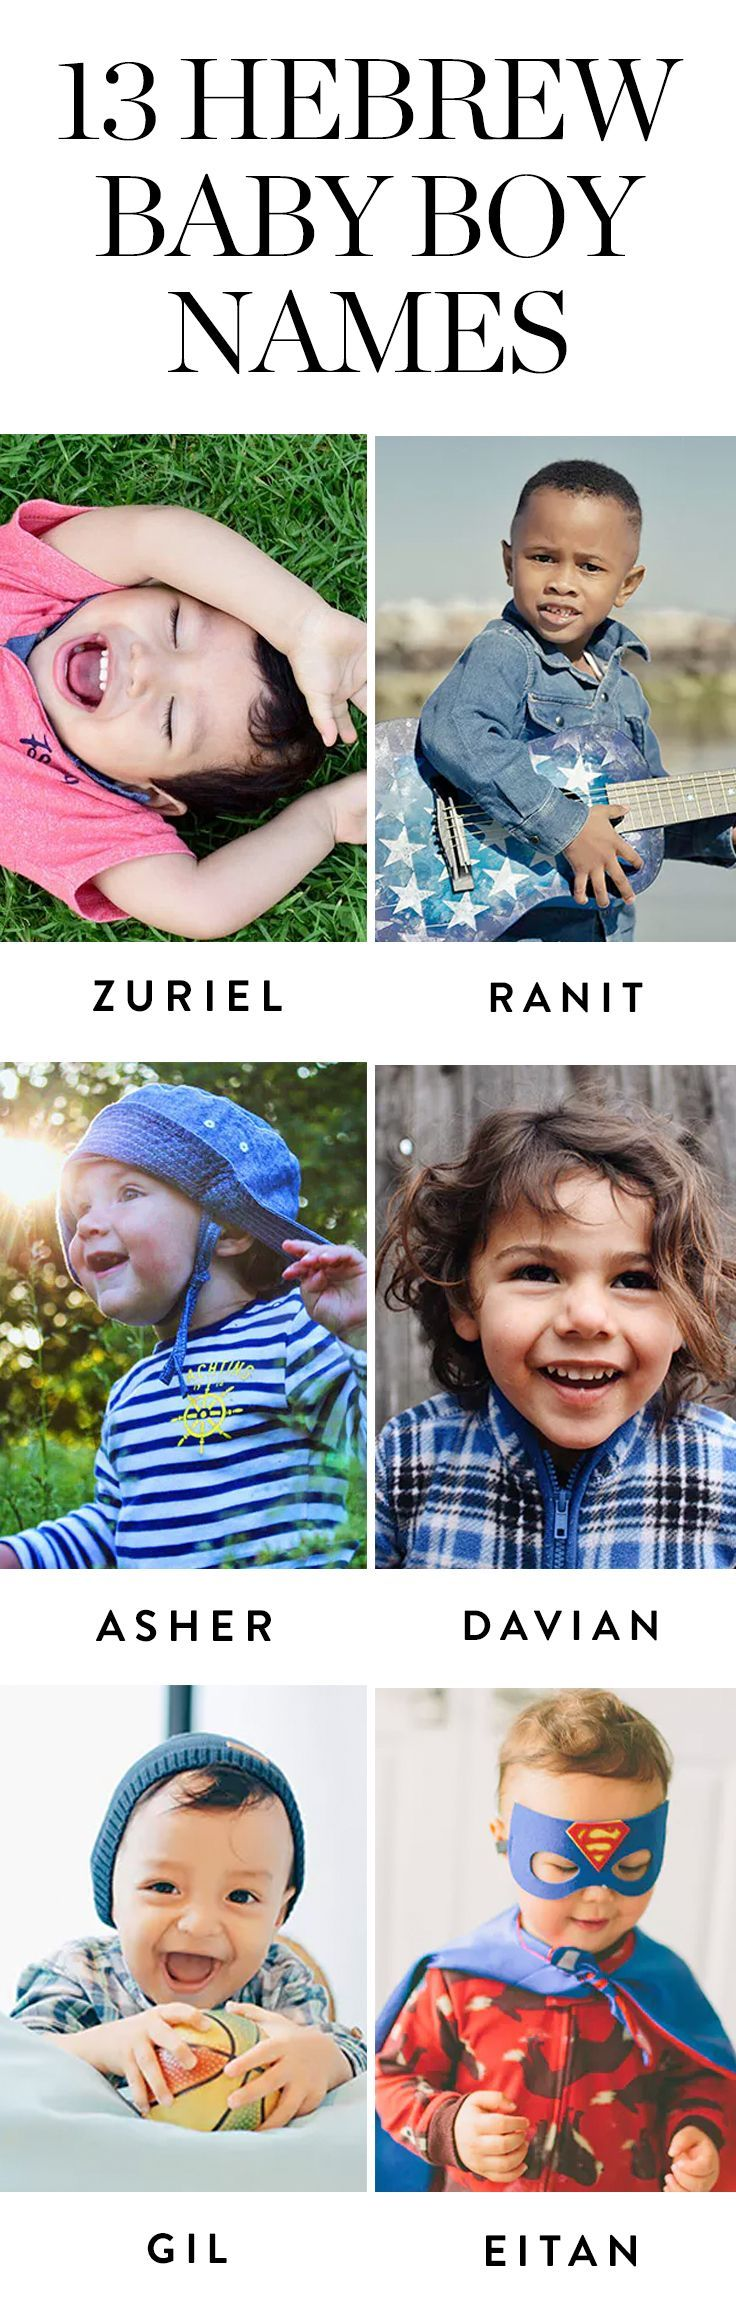 Discover these Hebrew boy names that are steeped in tradition, but feel totally original. #hebrewnames #hebrewbabynames #hebrewboynames